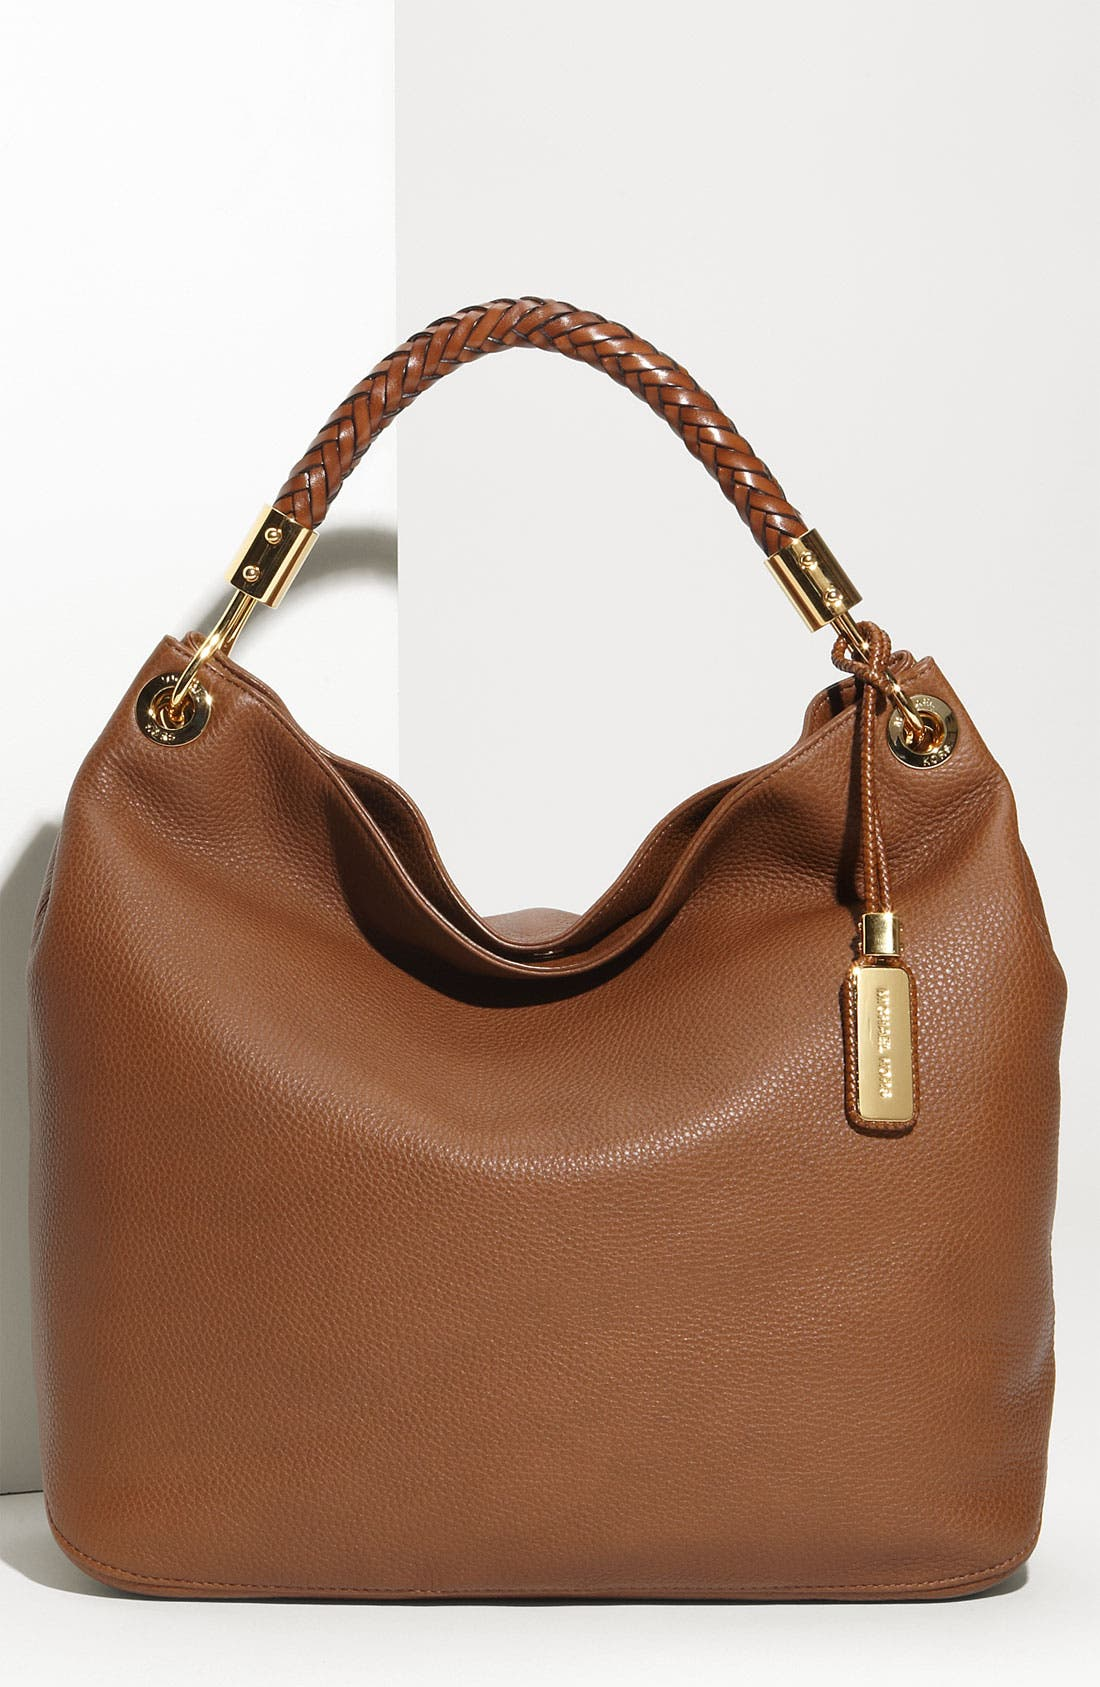 Alternate Image 1 Selected - Michael Kors 'Skorpios - Large' Leather Hobo